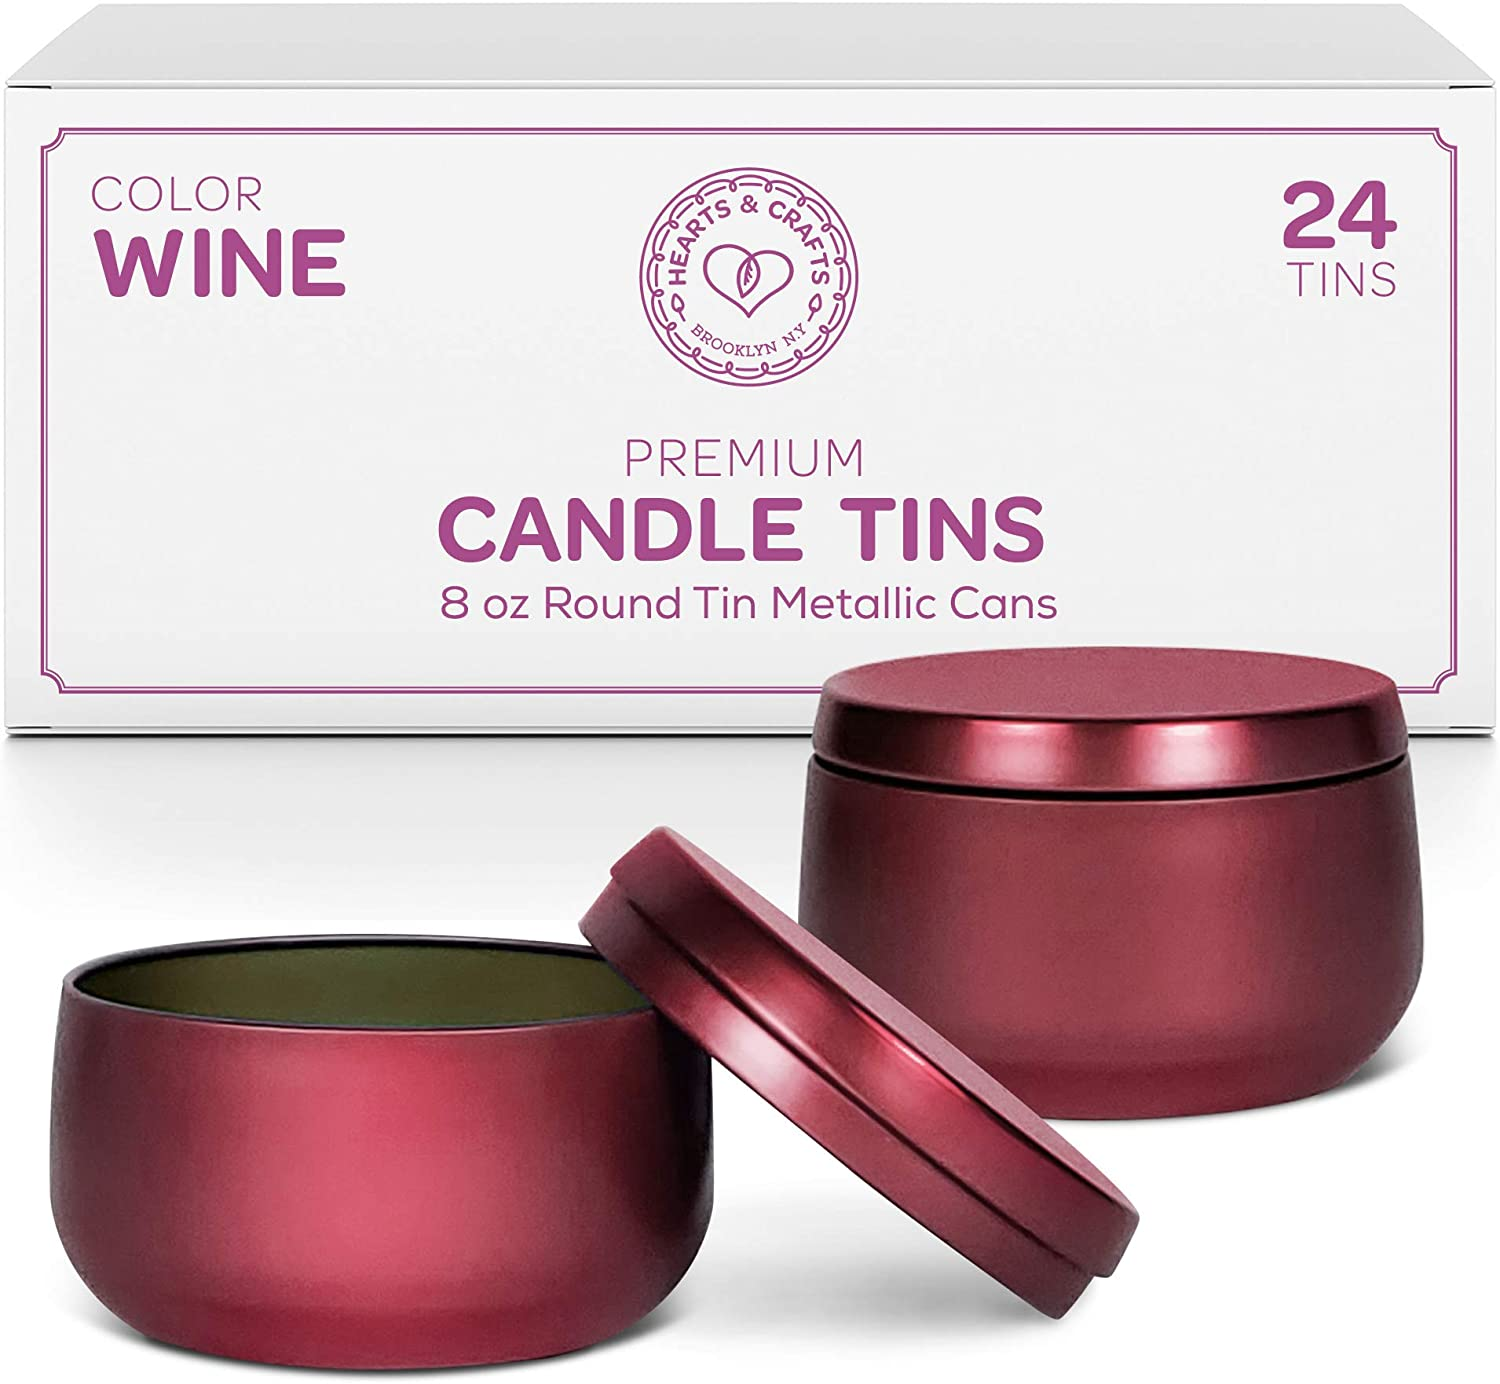 Hearts and Crafts Candle Tin Cans | 8-oz. Wine Tin Cans, 24-Pack | for Candles, Arts & Crafts, Storage, and More